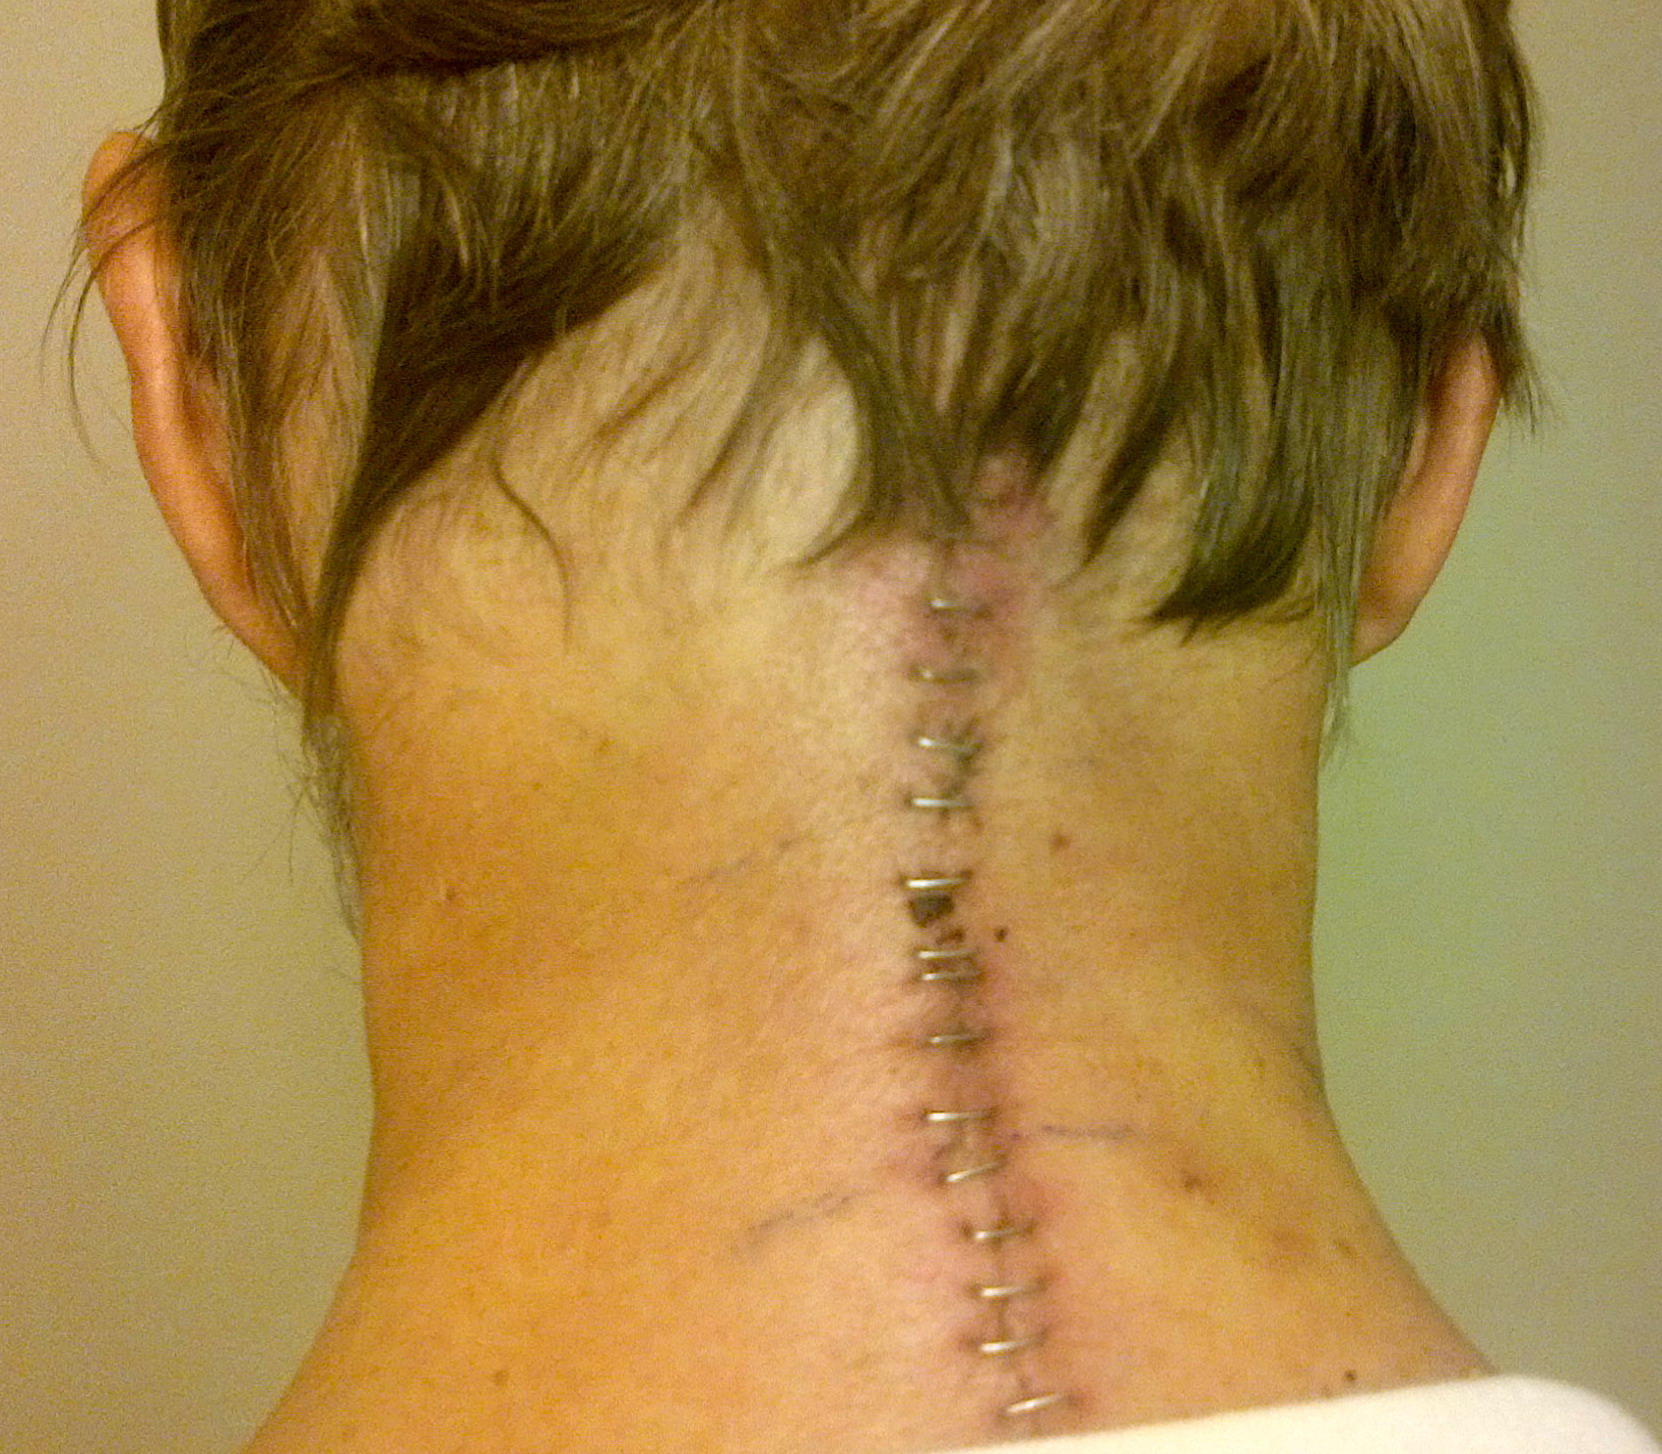 Neck incision for posterior C1.C2 cervical fusion (12 days post operation)